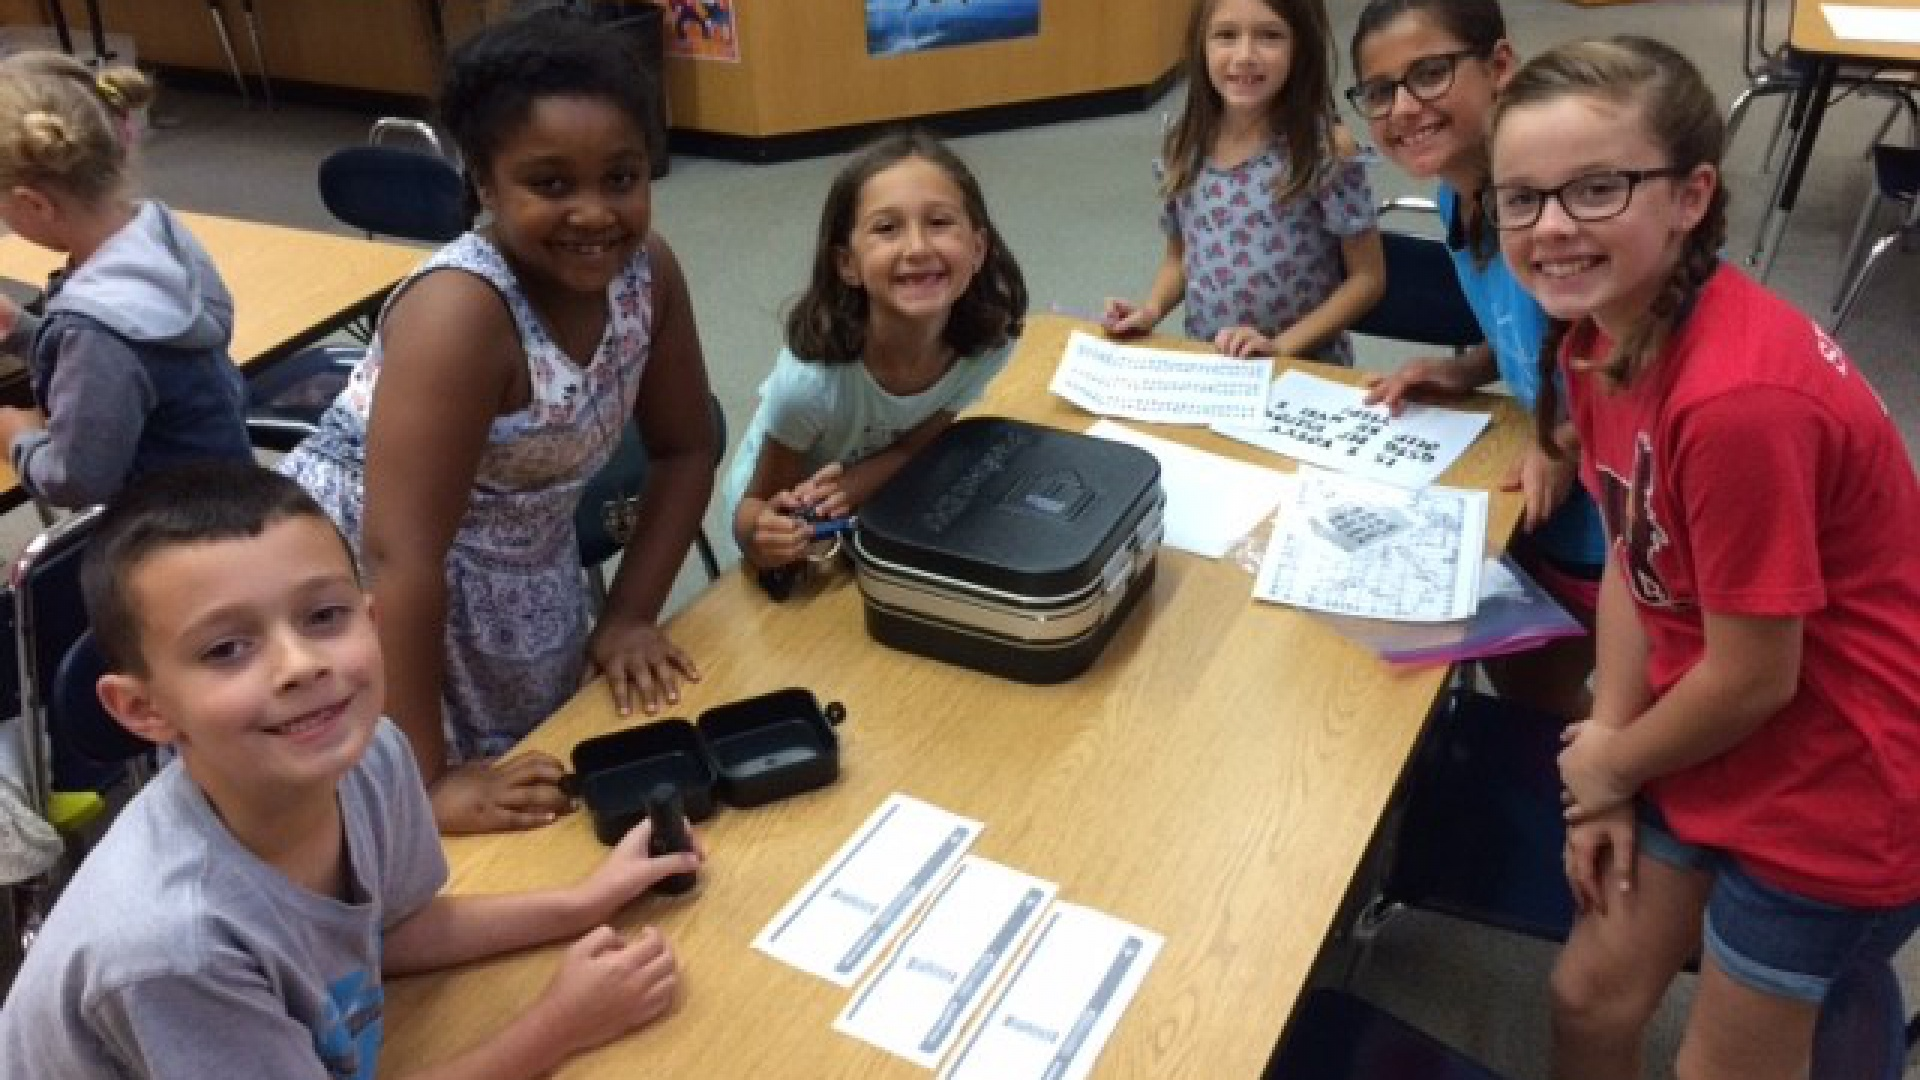 2nd grade and 5th grade collaboration activity